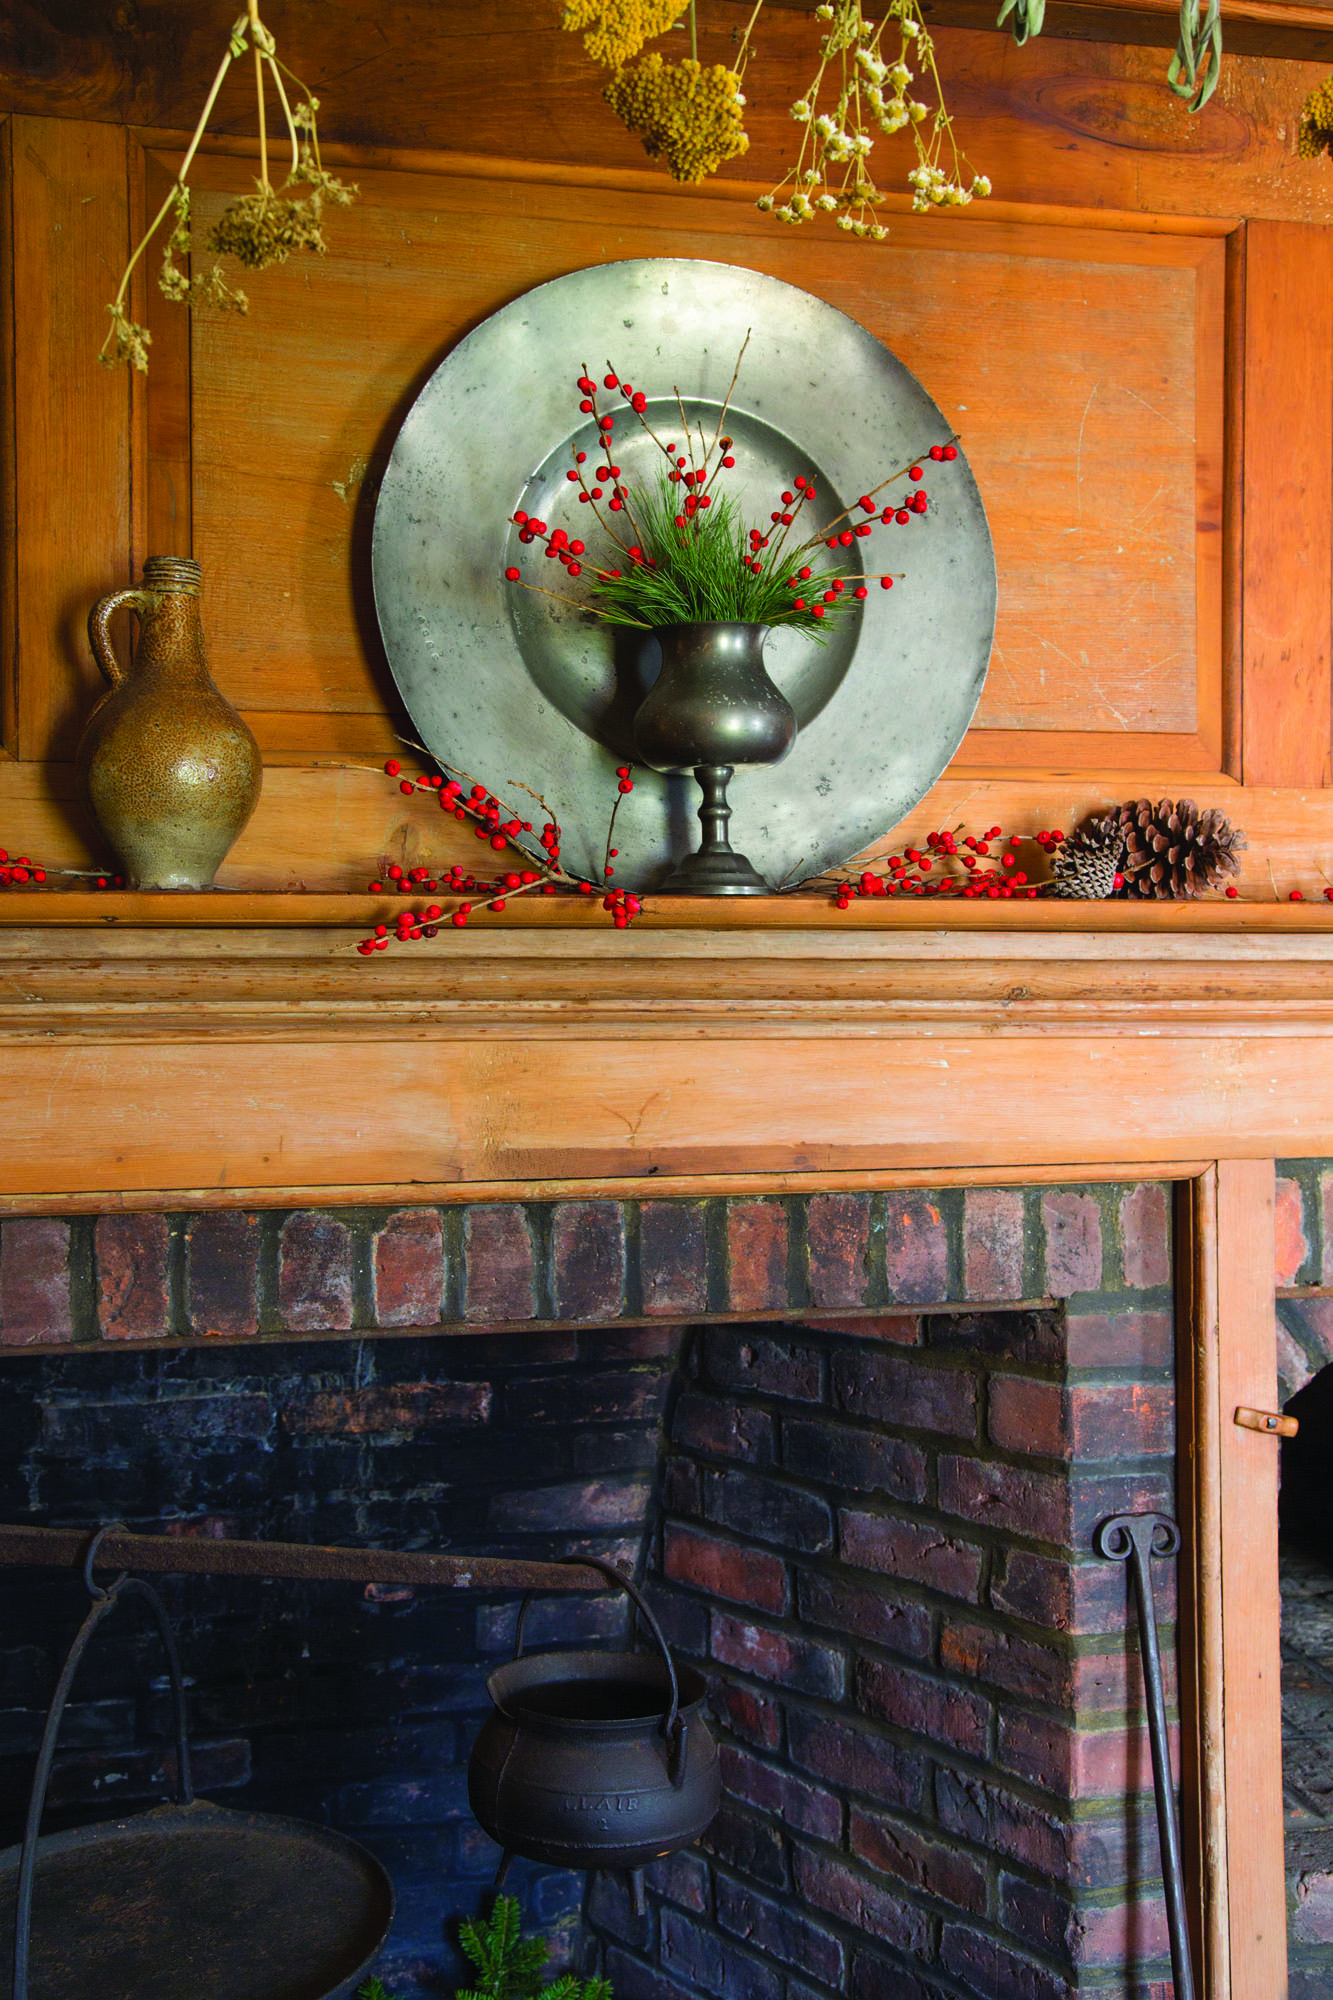 This fireplace, with its pine paneling and beehive oven, is in the 1760s Hearth Room. Herbs and yarrow from the autumn garden are hung to dry. Sprigs of winterberry holly give a pop of festive red against rustic wood and pewter plates. This holly variety is native to Connecticut.